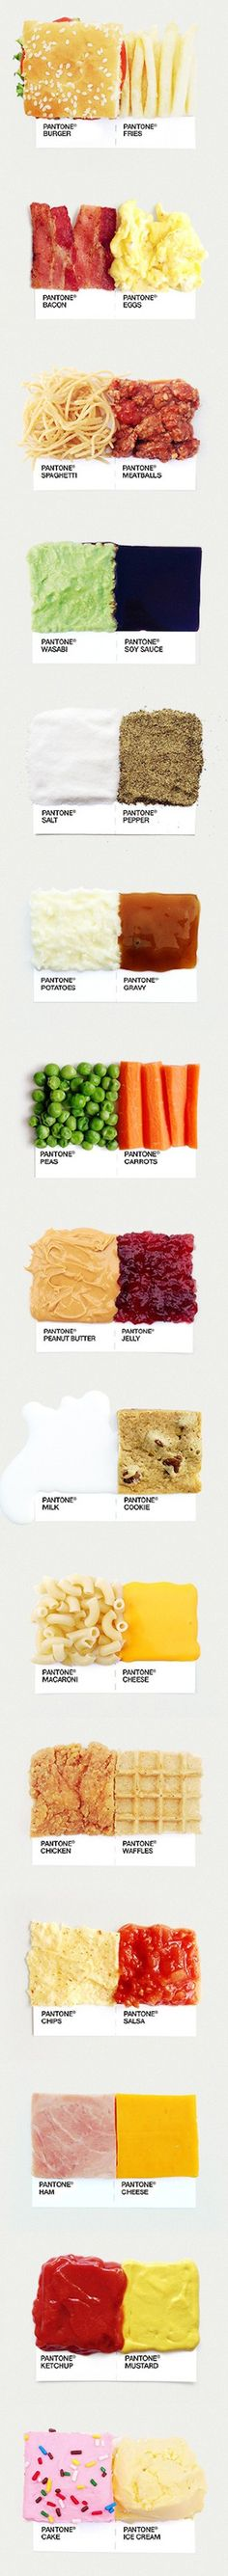 Blocks of spices on a plain marble backing w Pantone cards